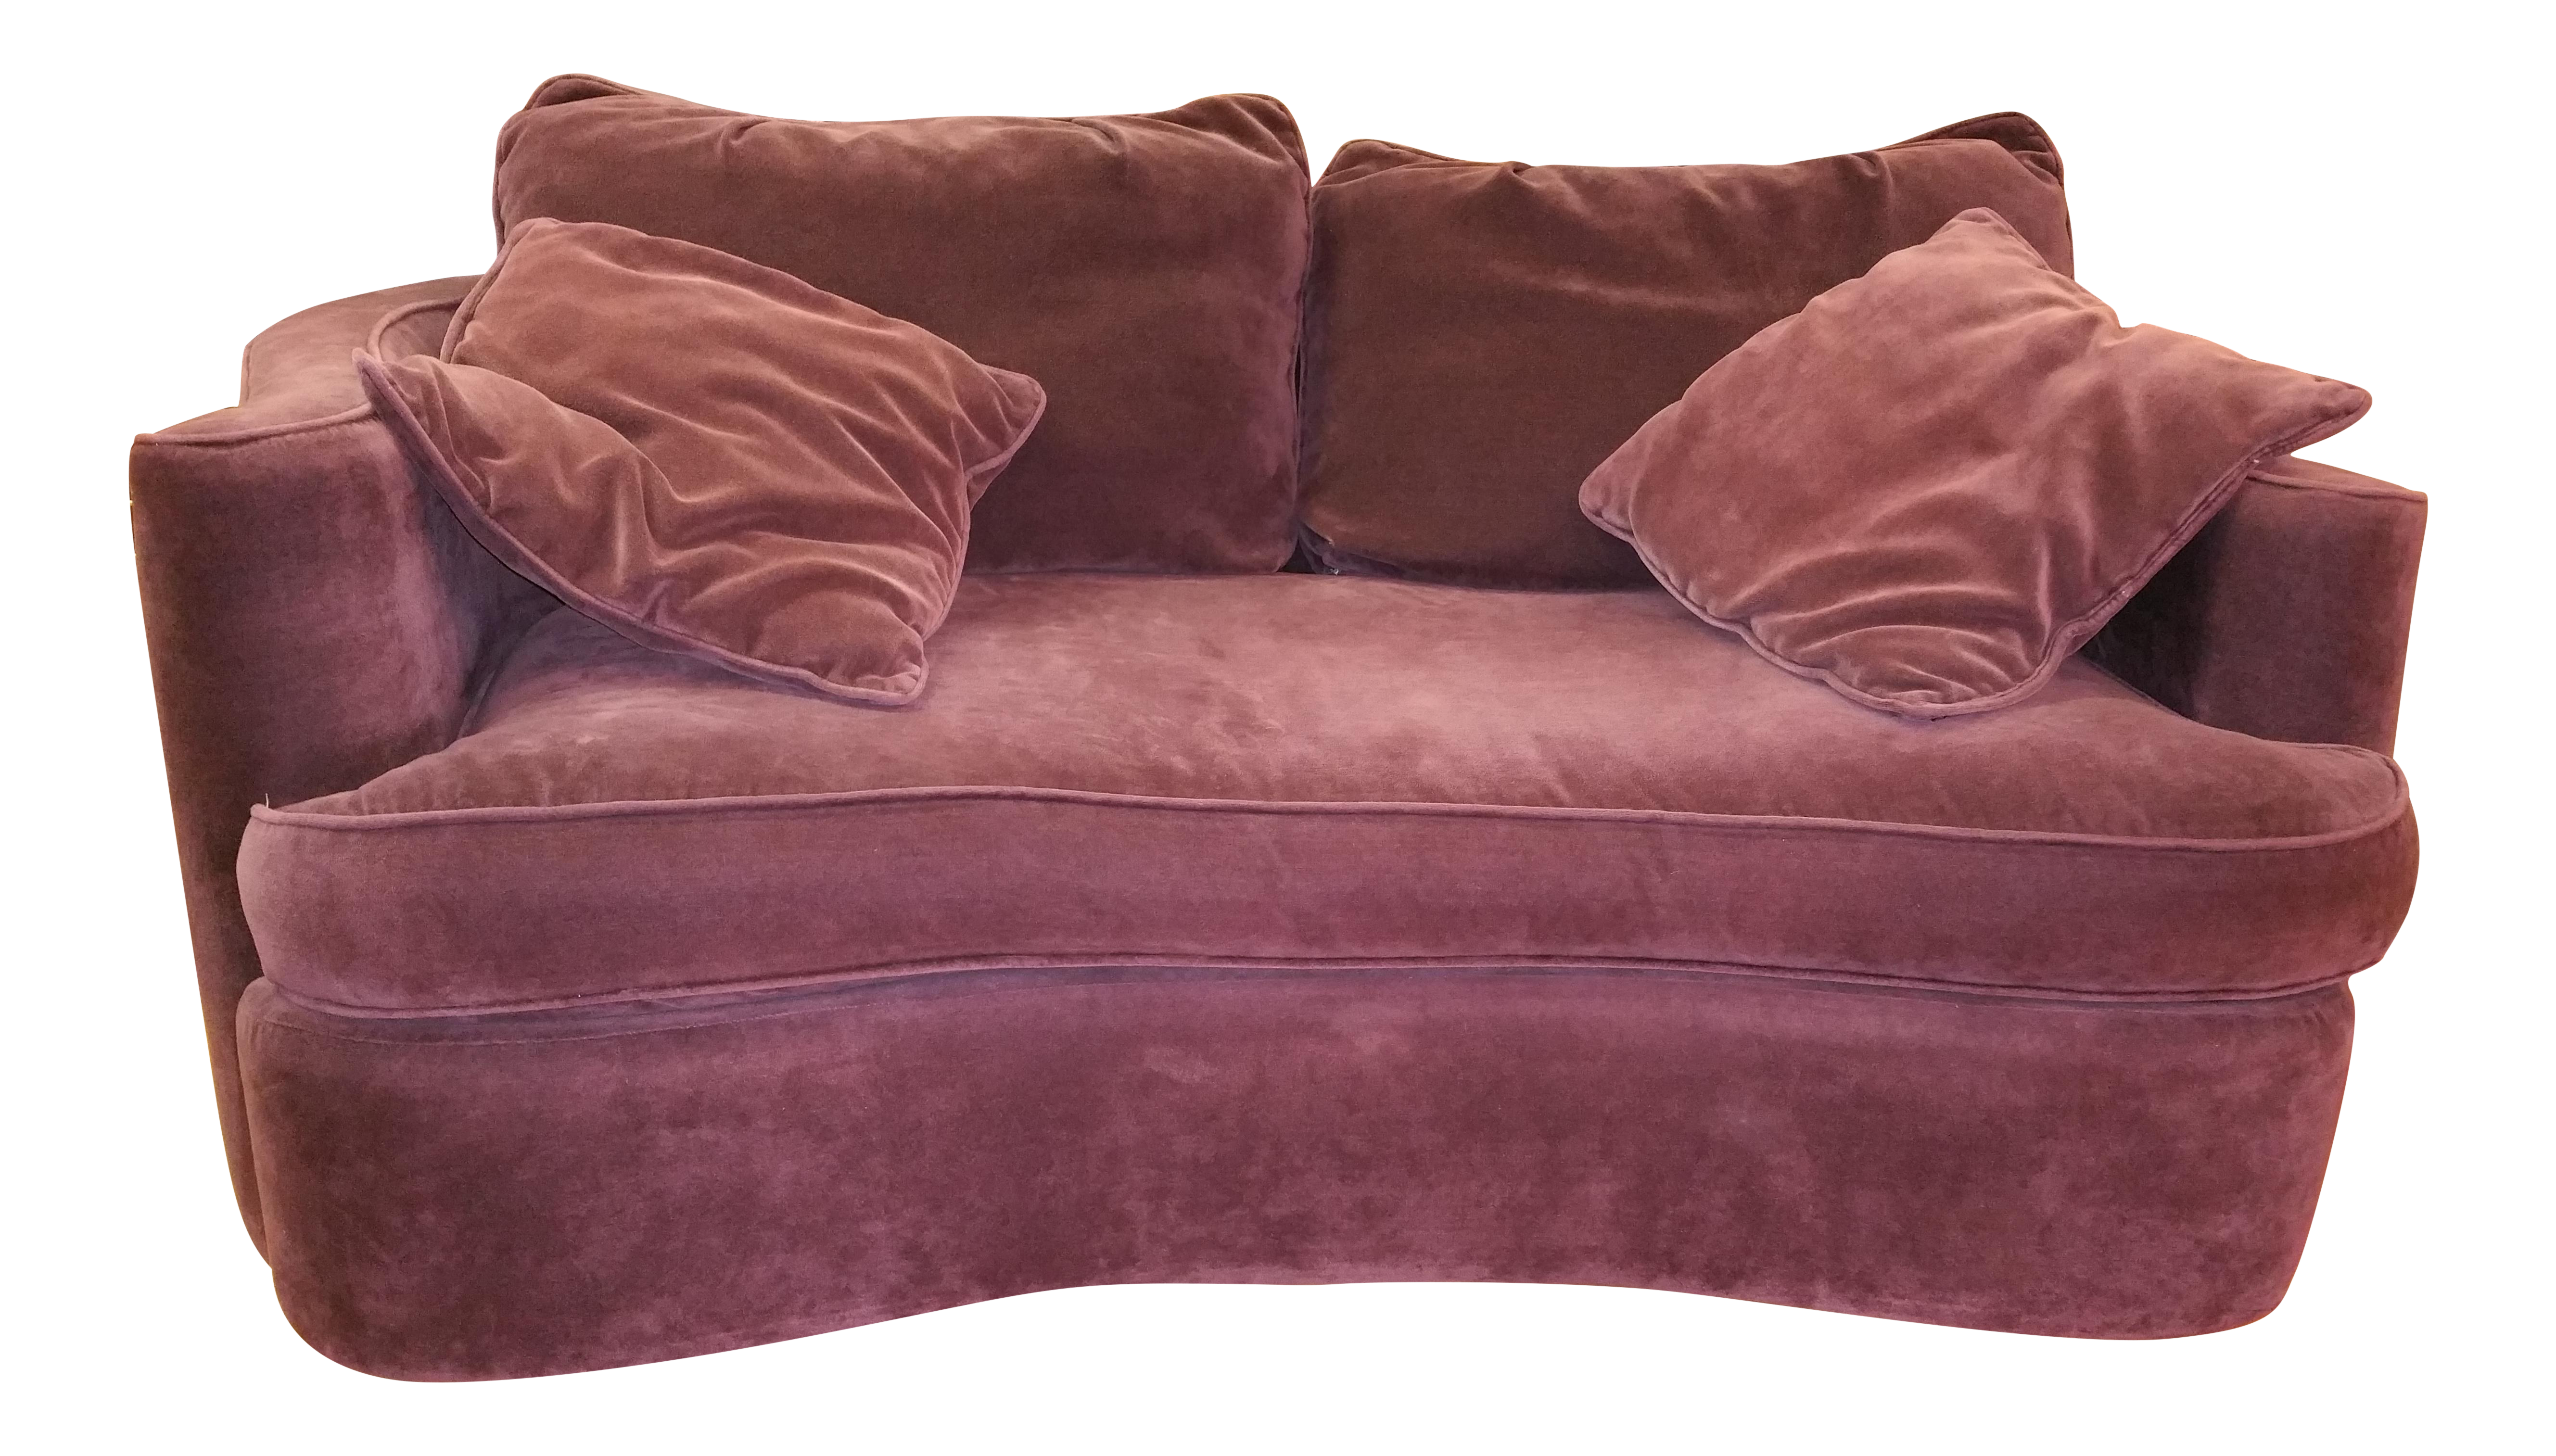 chocolate city product adrian and click mattresses change sofas sofa value image seating item plum furniture to room living loveseat